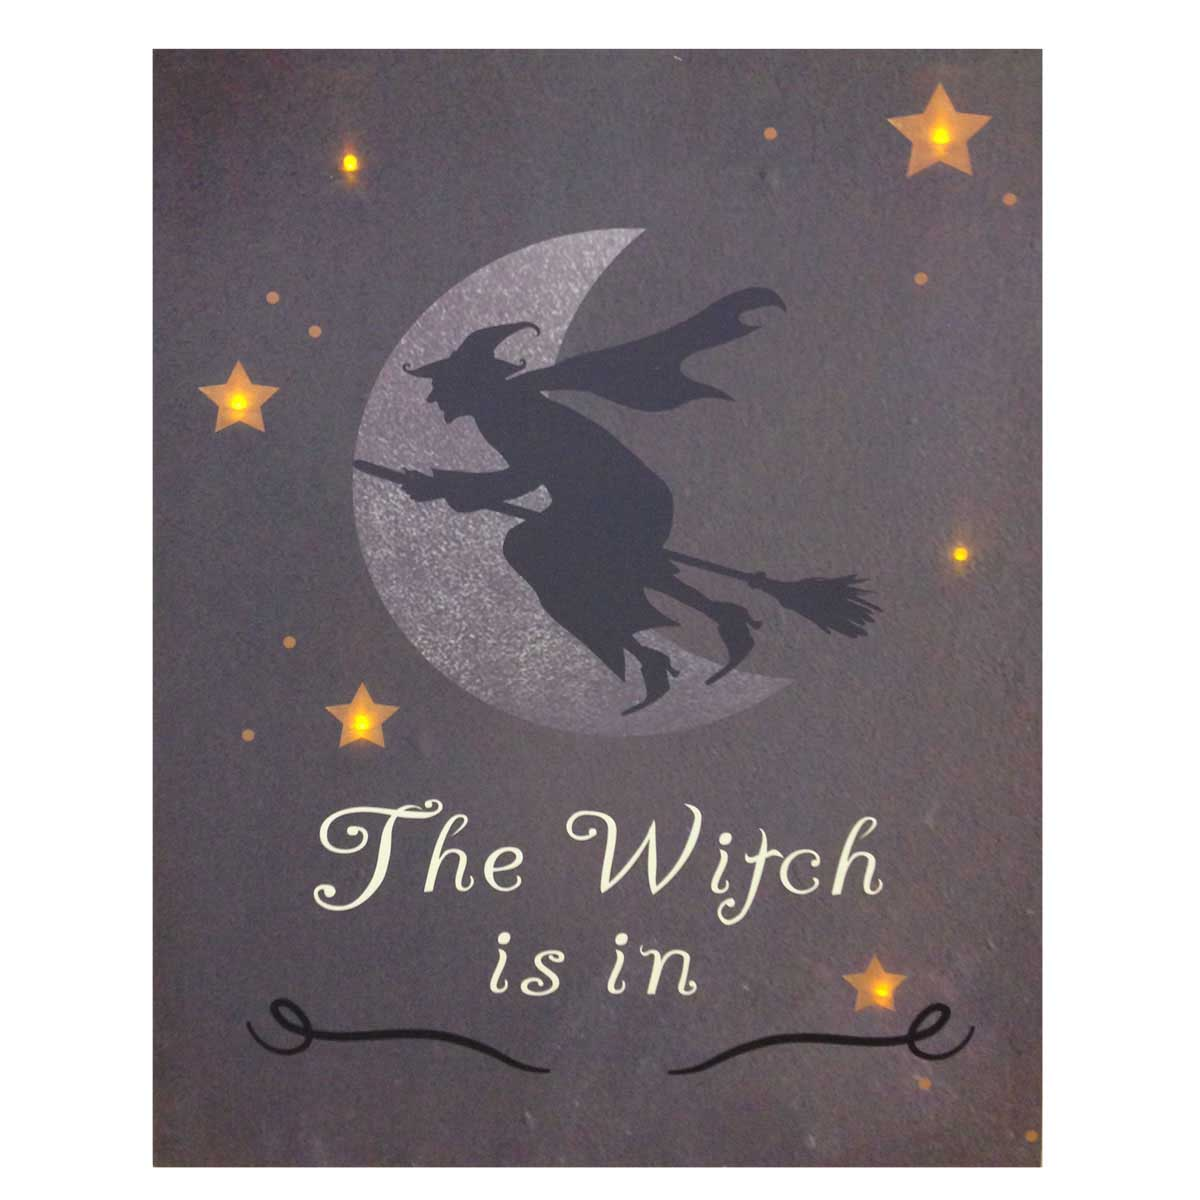 Design House The Witch is In Lit Canvas Halloween Wall Decoration, 18x24-inches - 319798